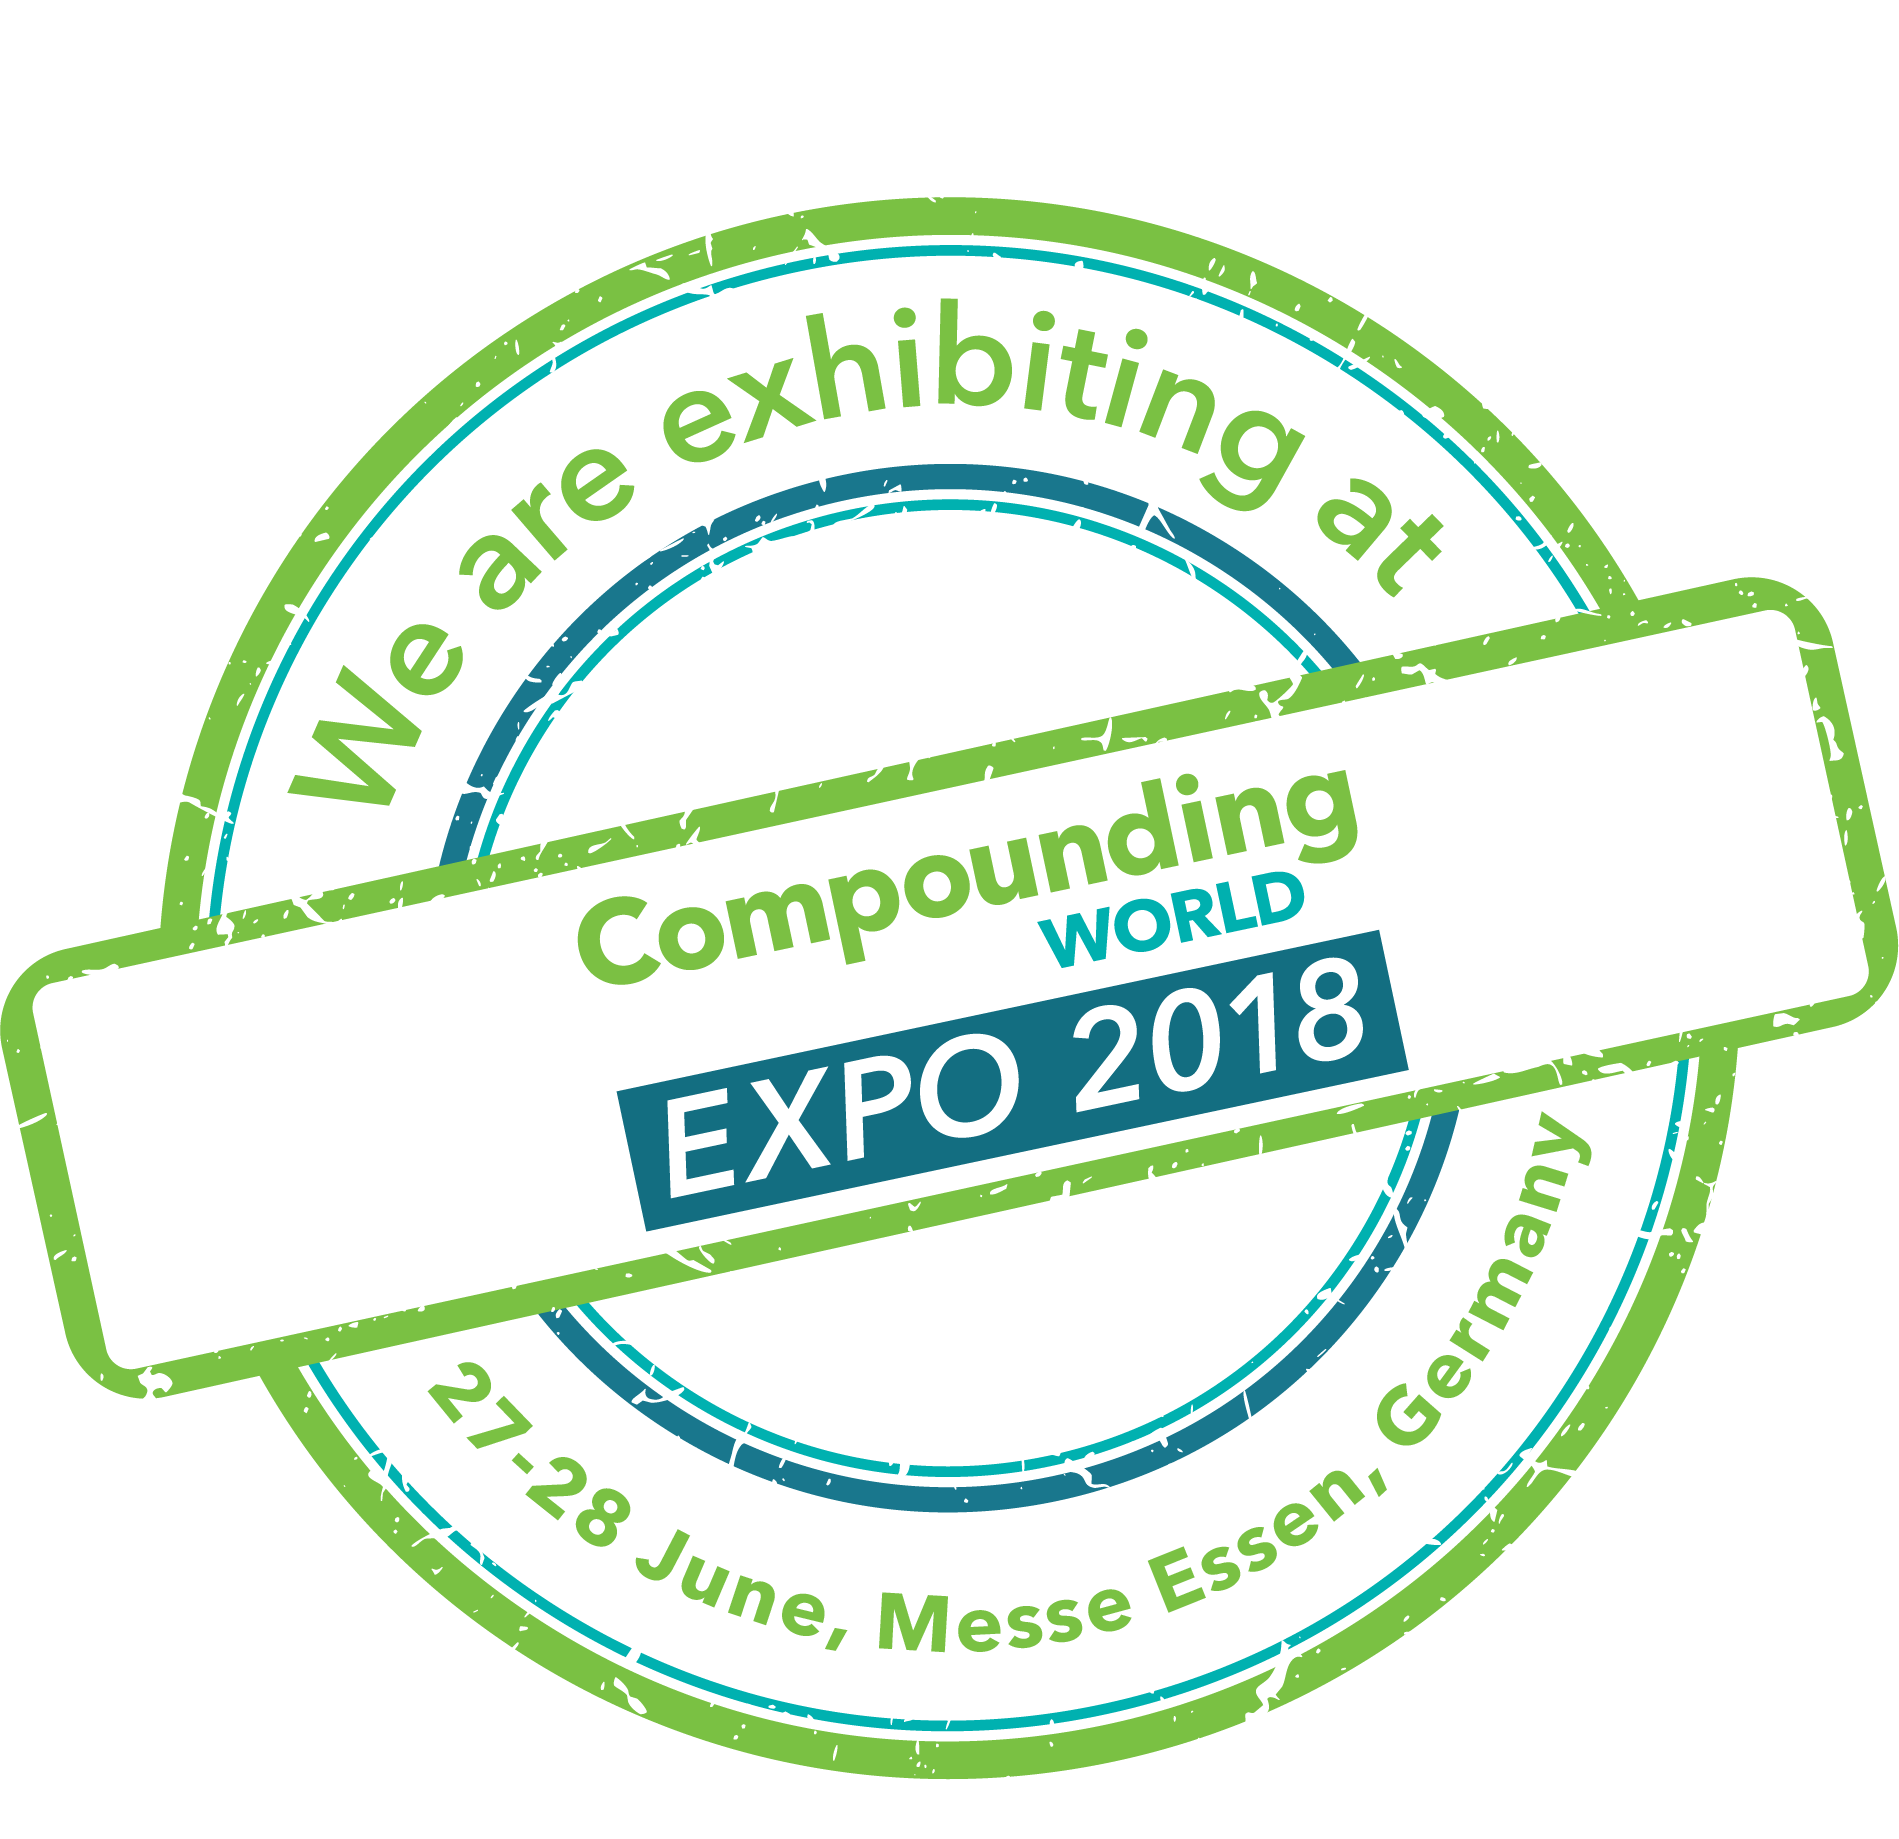 Kisuma Chemicals will exhibit at the Compounding World Expo in Essen